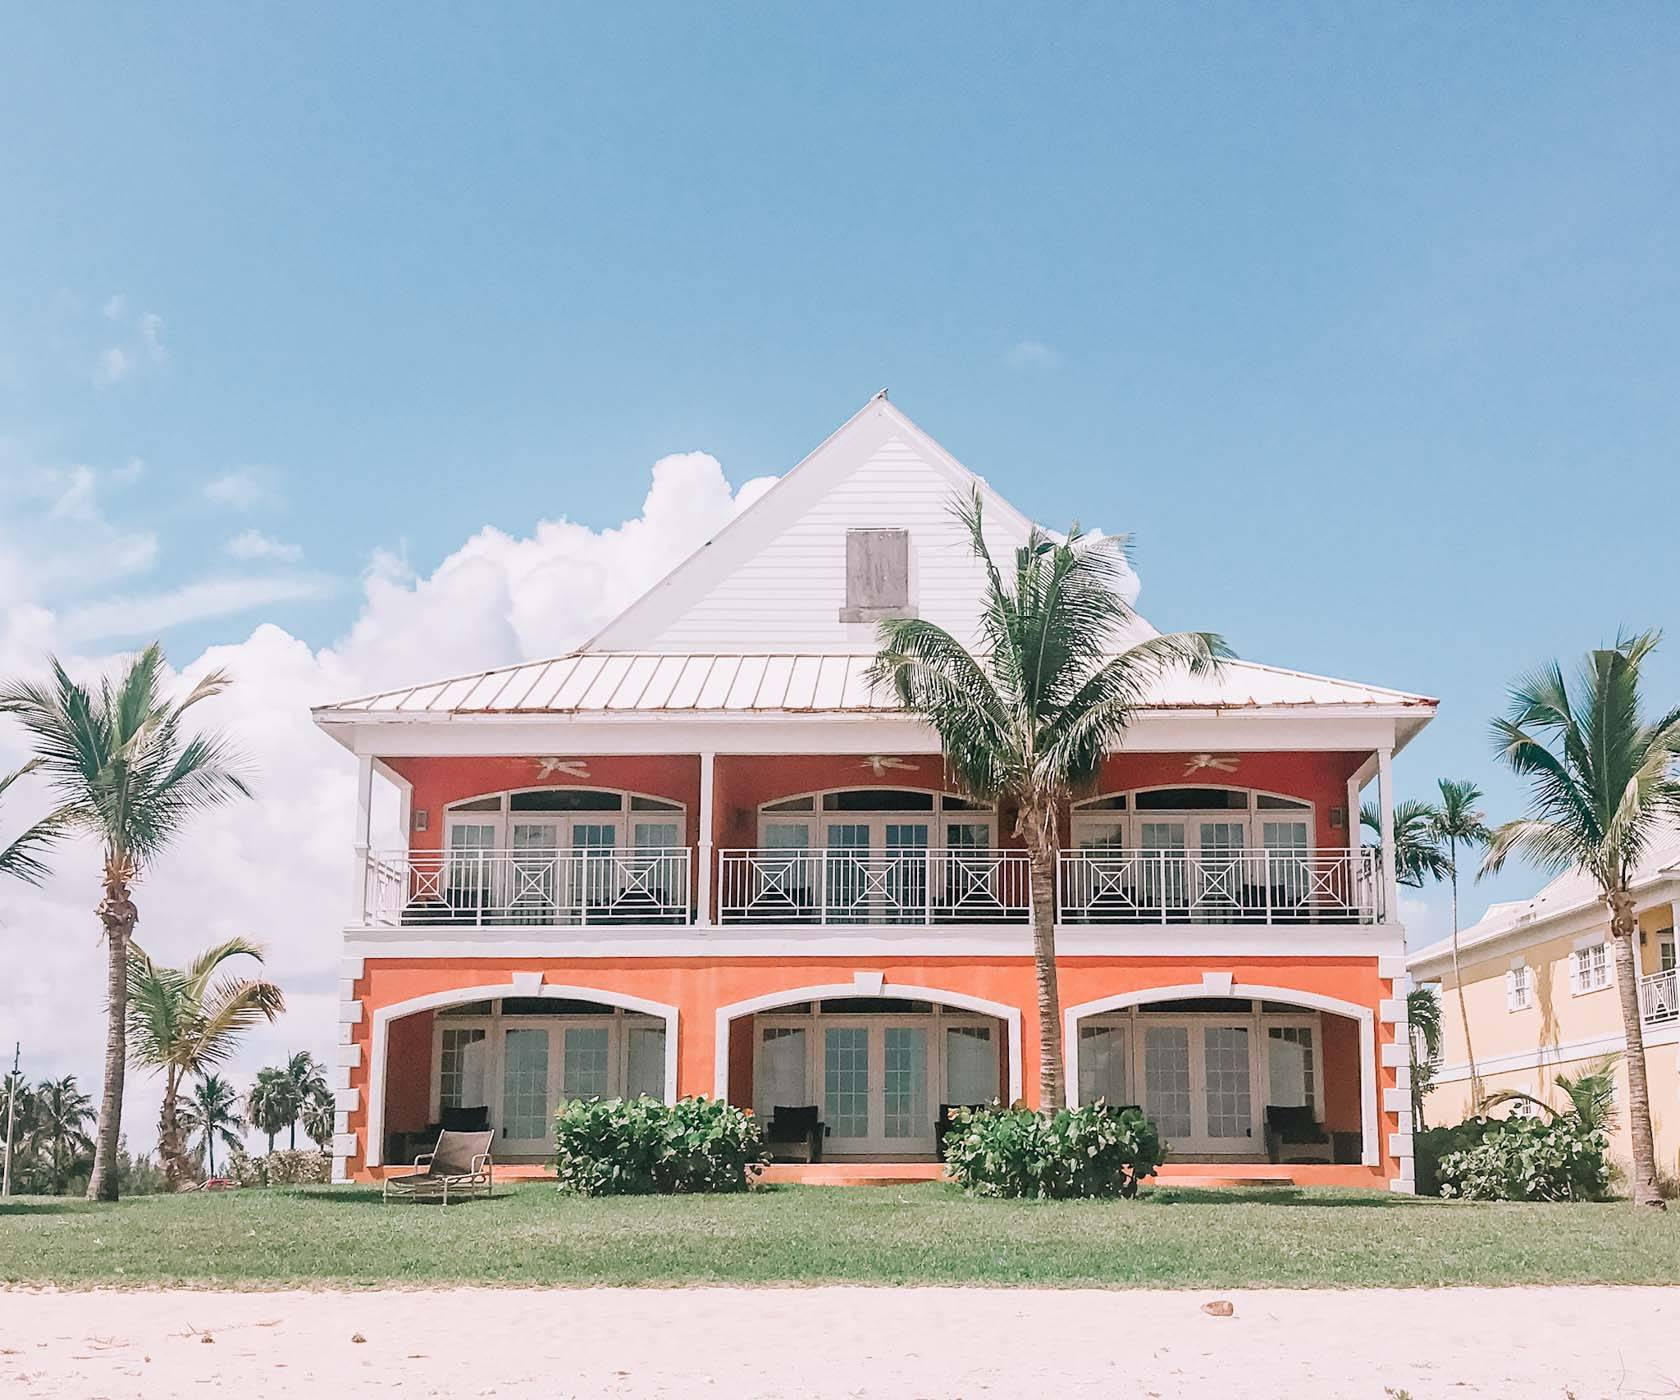 There are so many great things to do in Freeport Bahamas that finding the perfect Freeport bahamas excursion is harder than you think. That's why we narrowed down the list to these 11 options.